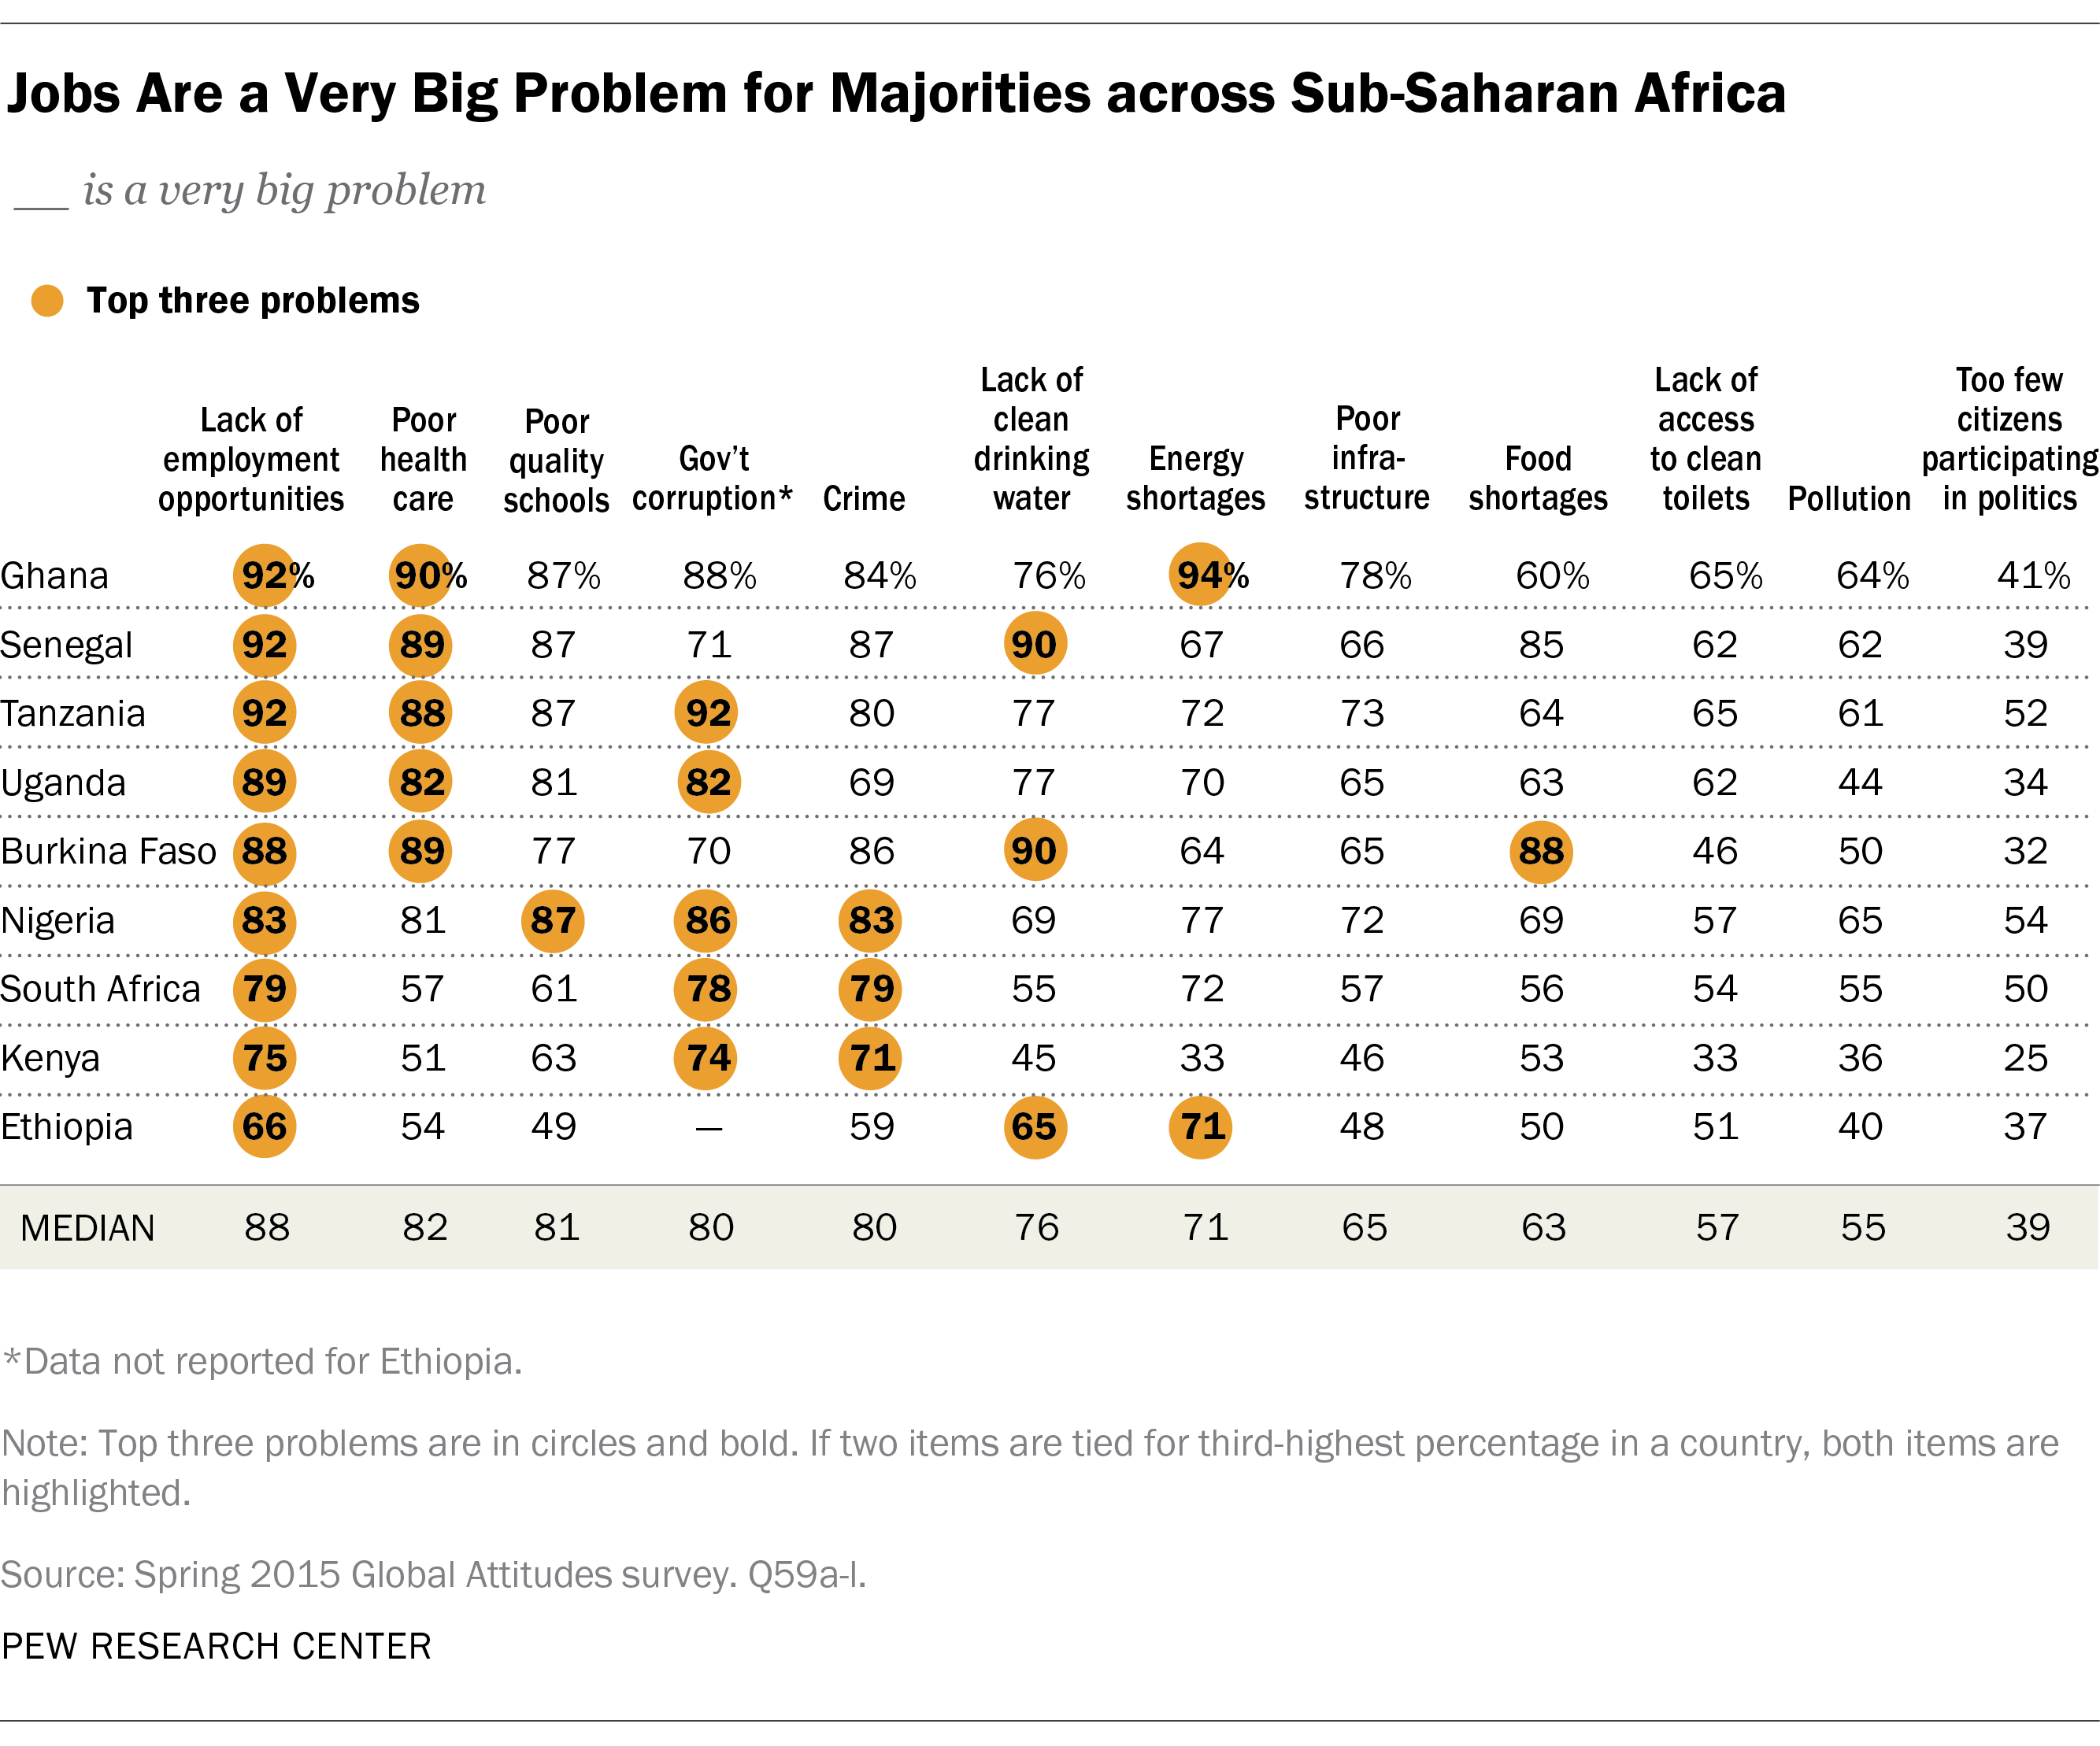 Concerns and Priorities in Sub-Saharan Africa | Pew Research Center